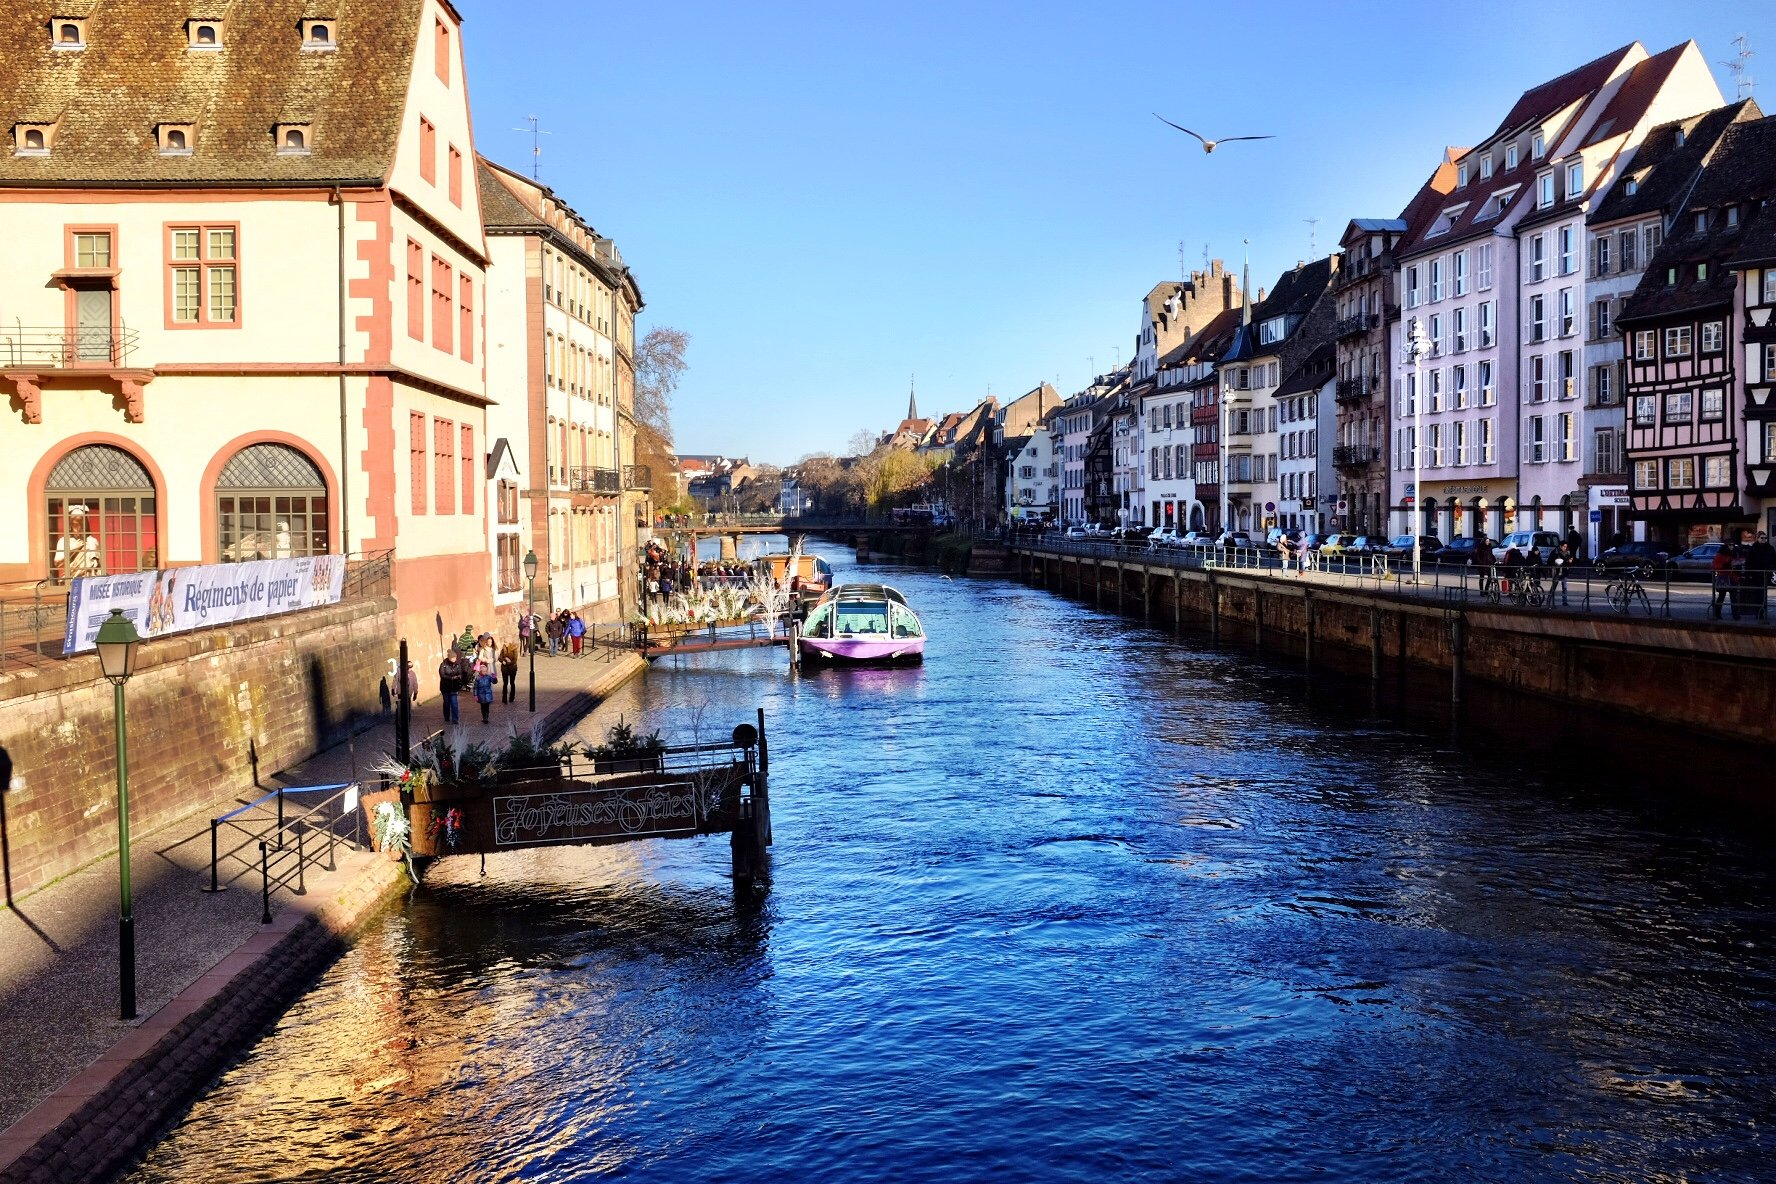 The river Ill in Strasbourg. Old houses at the boarder and a boat in the water.